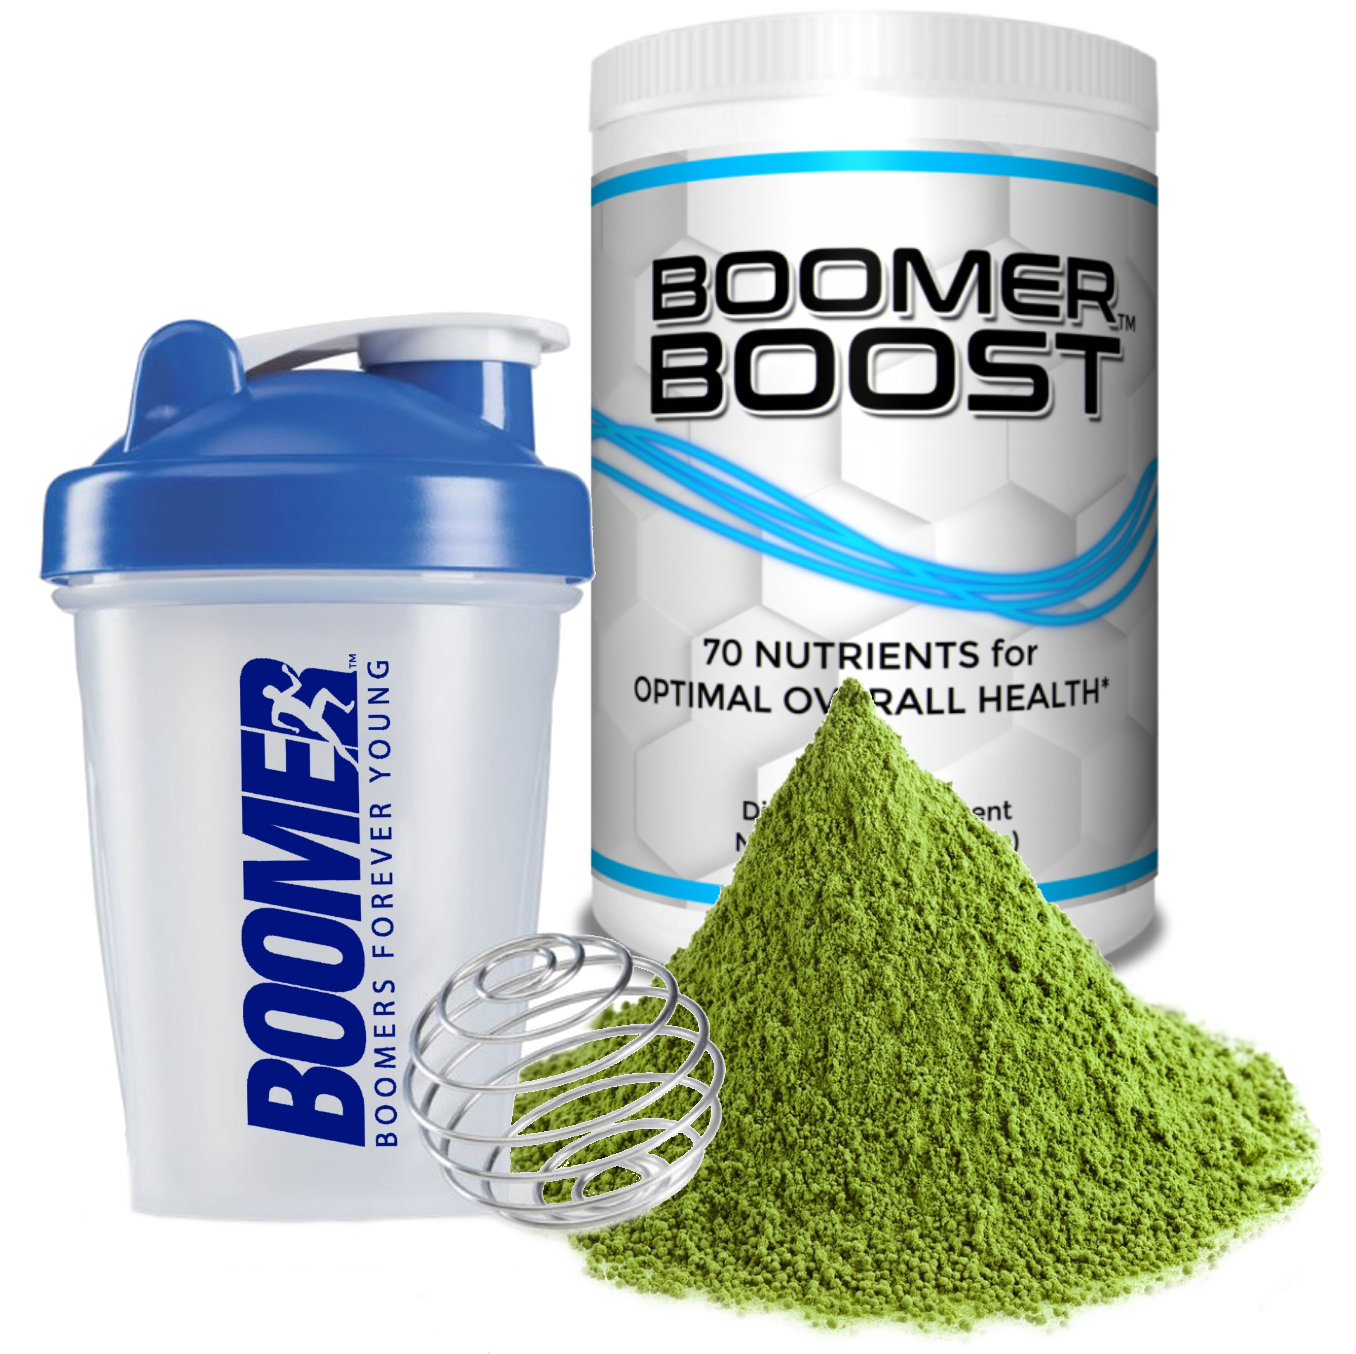 Boomer Boost best green drink